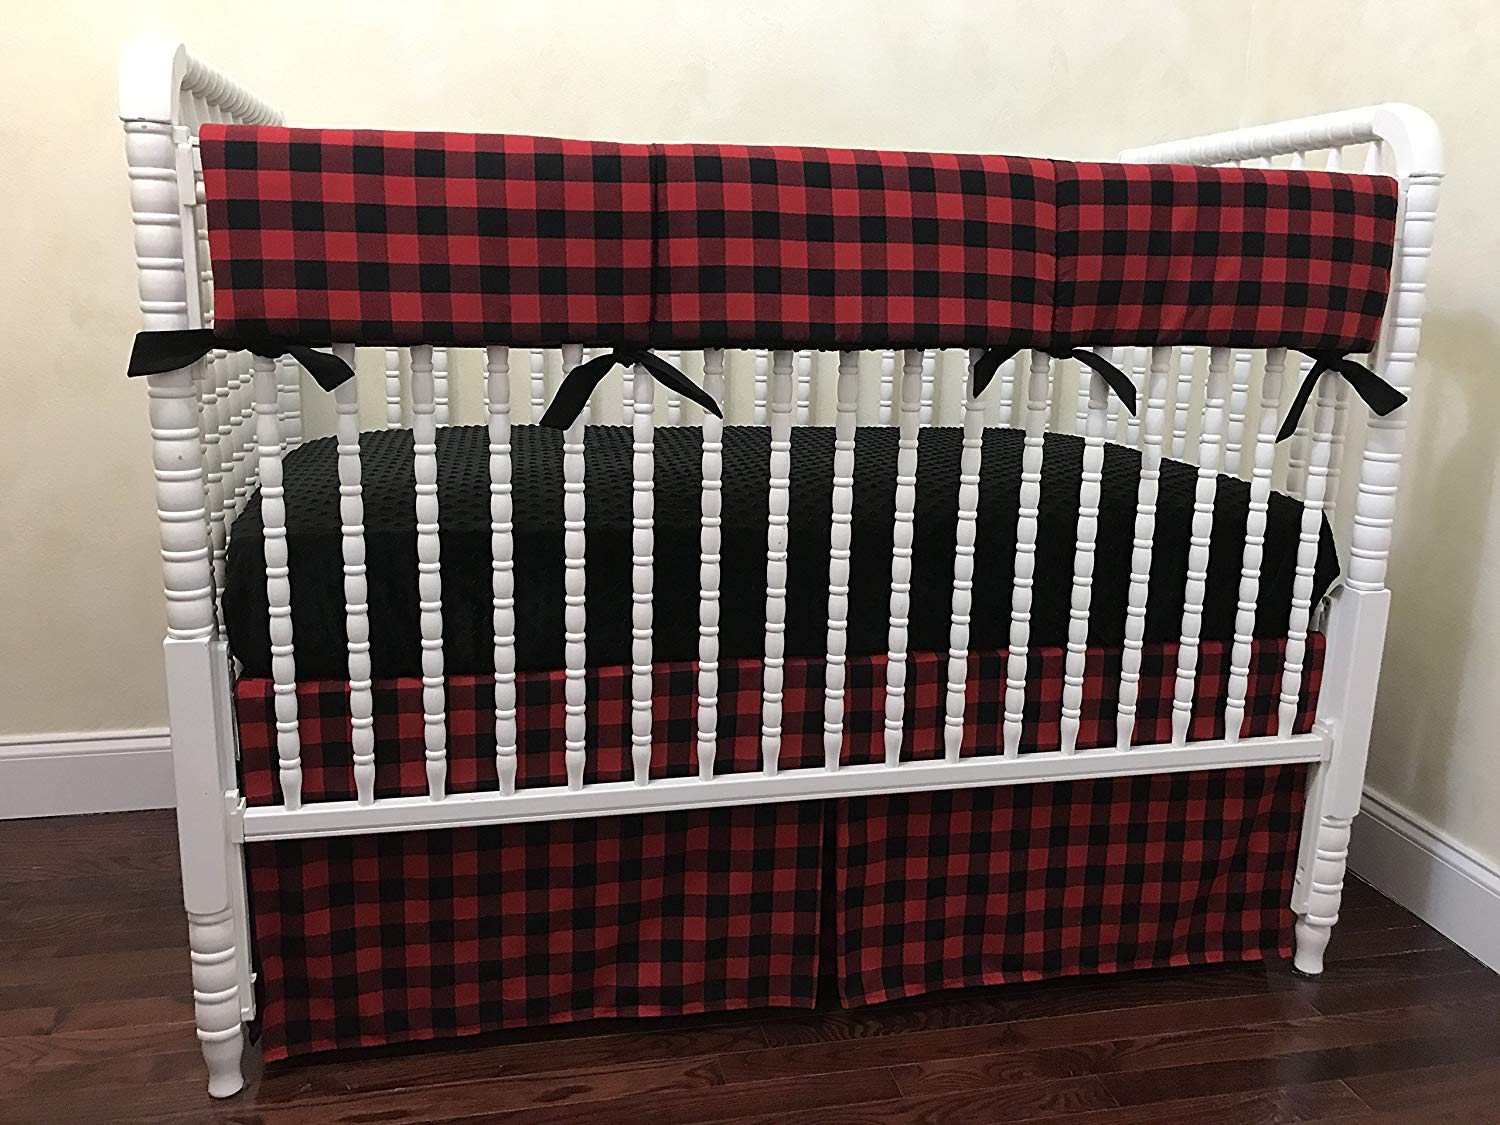 e23f89147 Get Quotations · Nursery Bedding, Bumperless Baby Crib Bedding Set, Baby  Boy Bedding, Teething Rail Guard